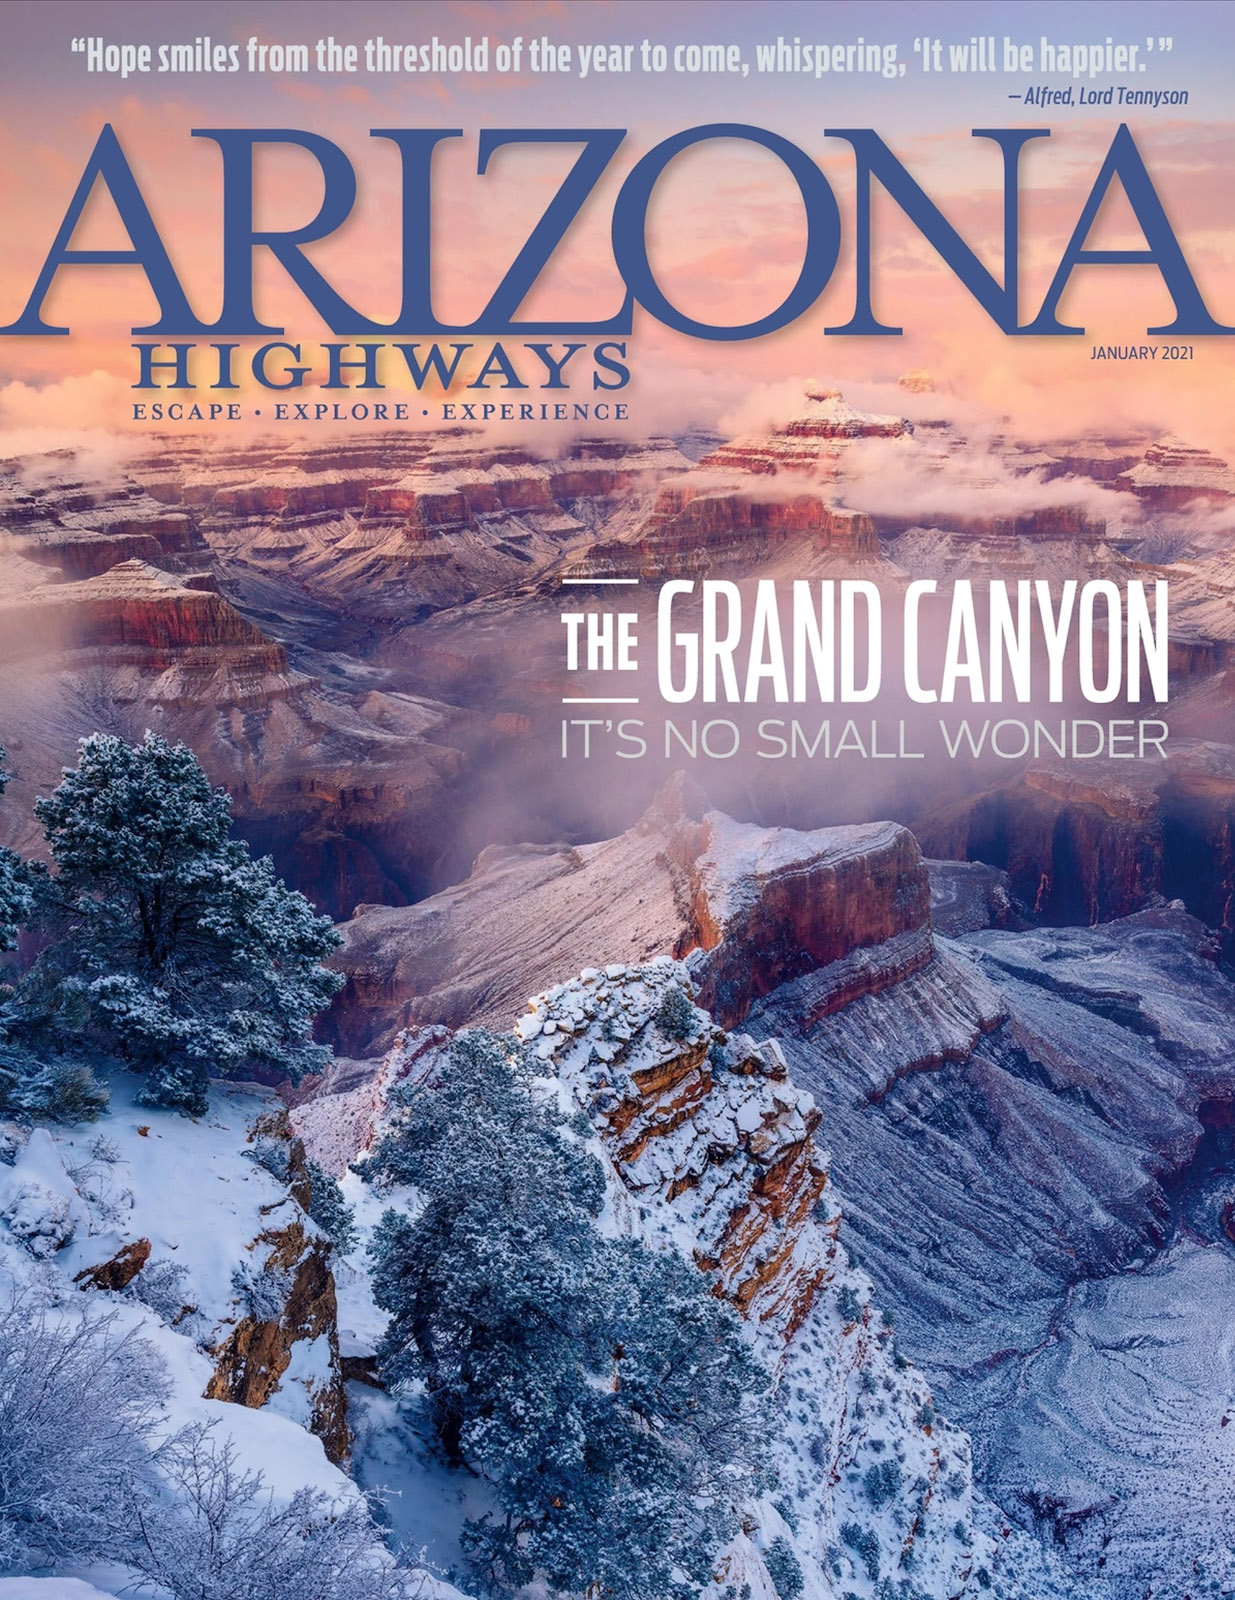 The cover of the January 2021 issue of Arizona Highways features my photograph Clearing Winter Storm at Hopi Point depicting...